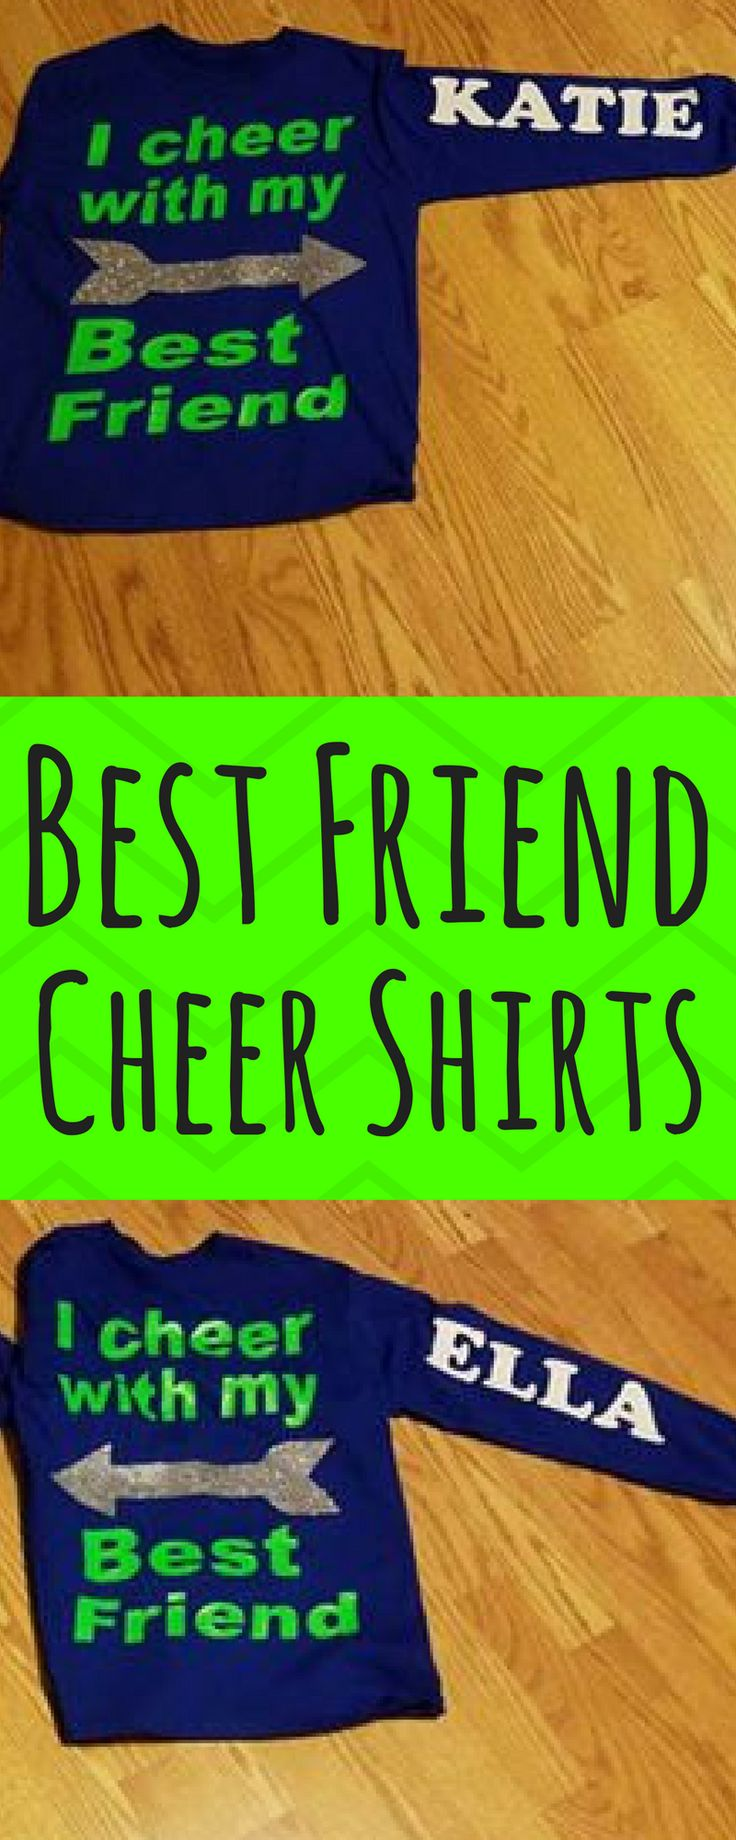 $20. I cheer with my best friend! Cheerleader, Cheerleading, Best Friend, Cheer Mom, Cheer Dad, Long Sleeved Shirt. #cheerleading #ad